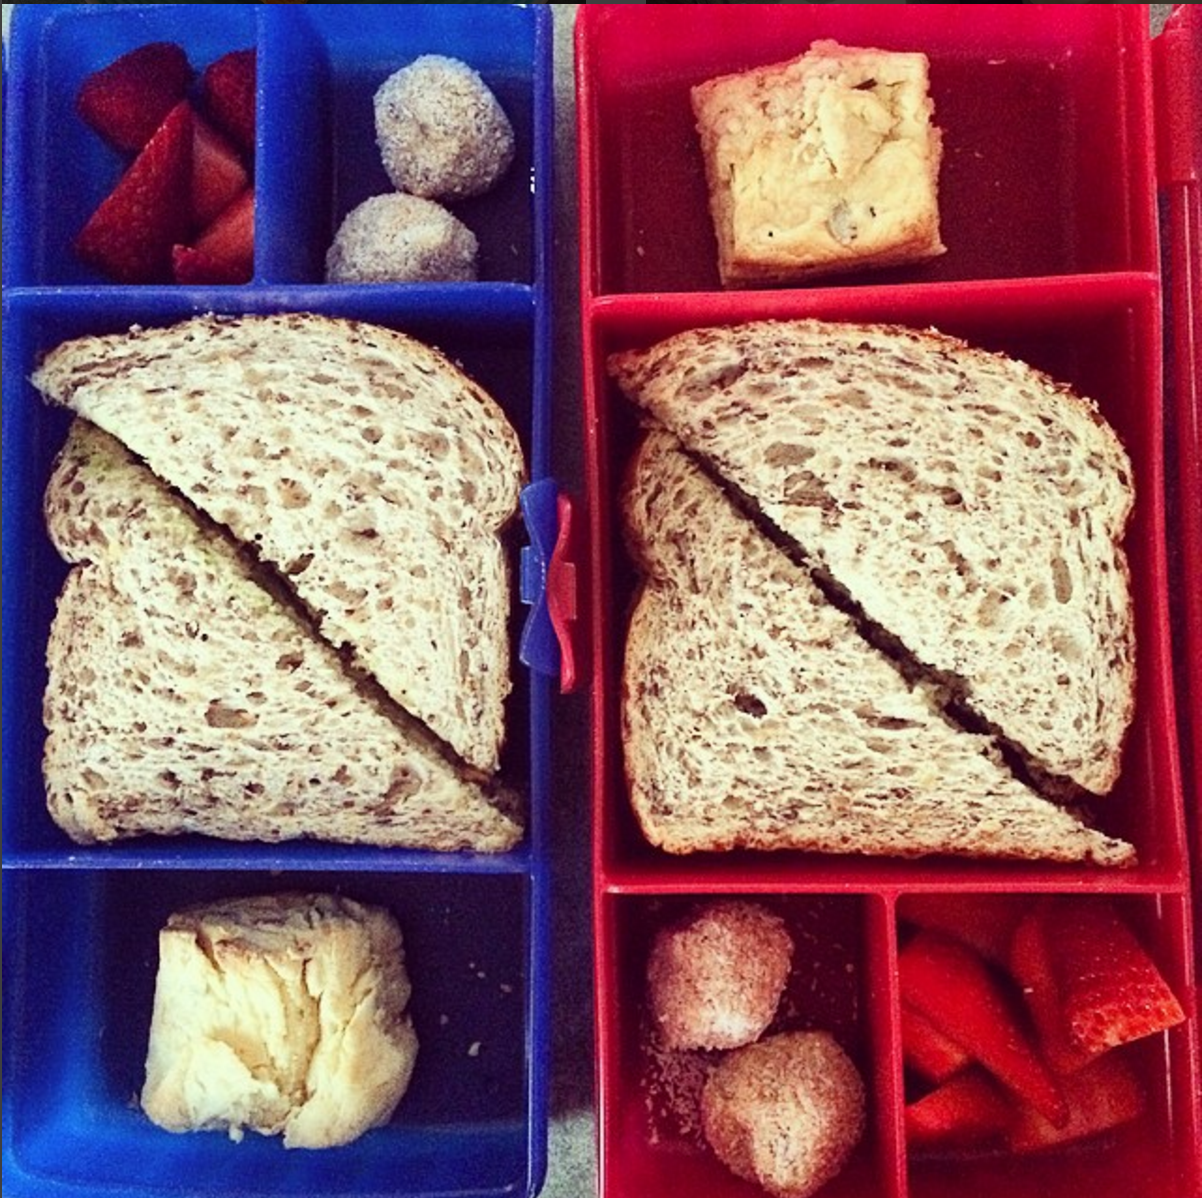 Lunchbox ideas - home-baked goods always add a bit of extra interest in a child's lunchbox!